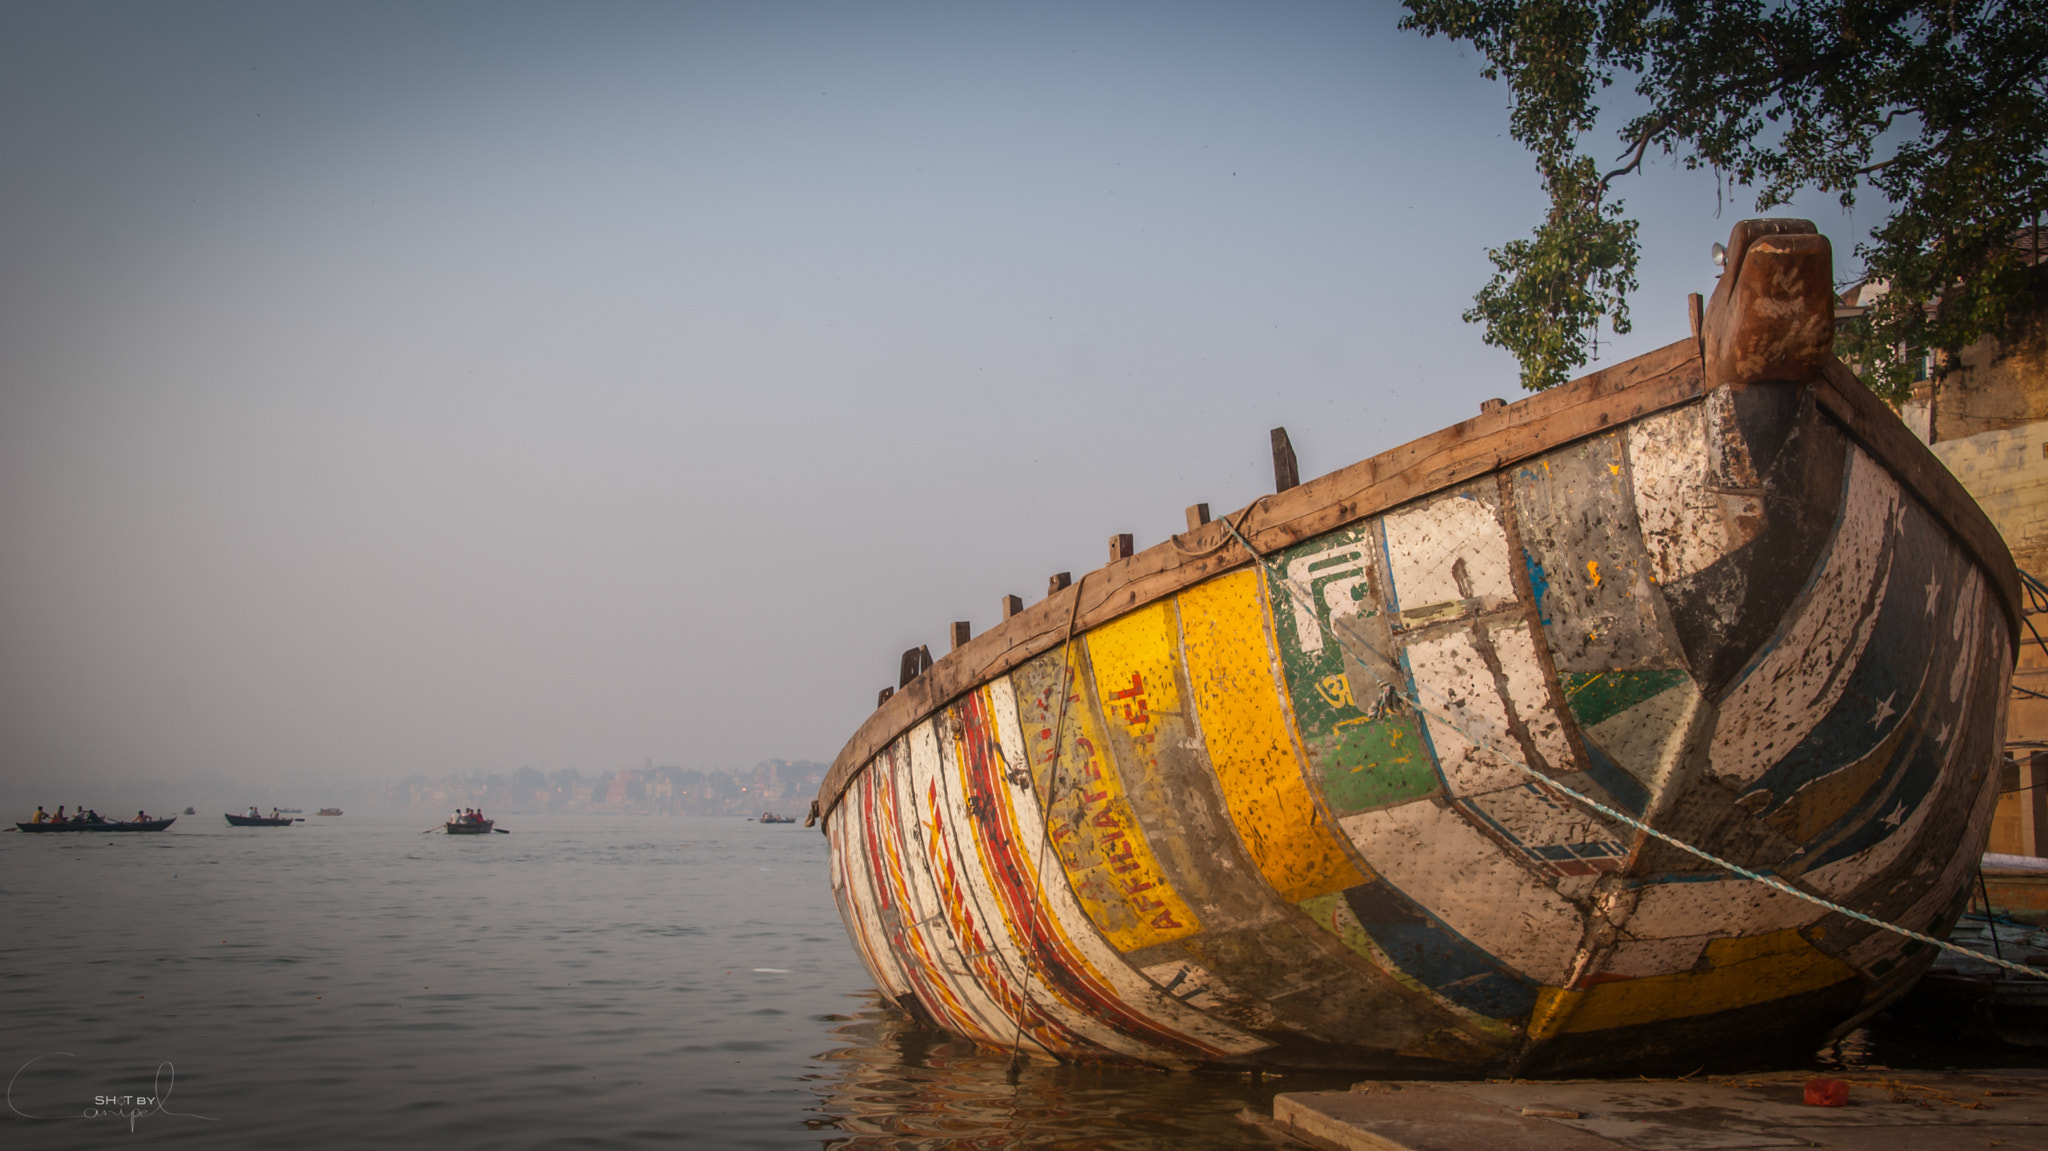 Photograph Ganges boat by Jelle Canipel on 500px